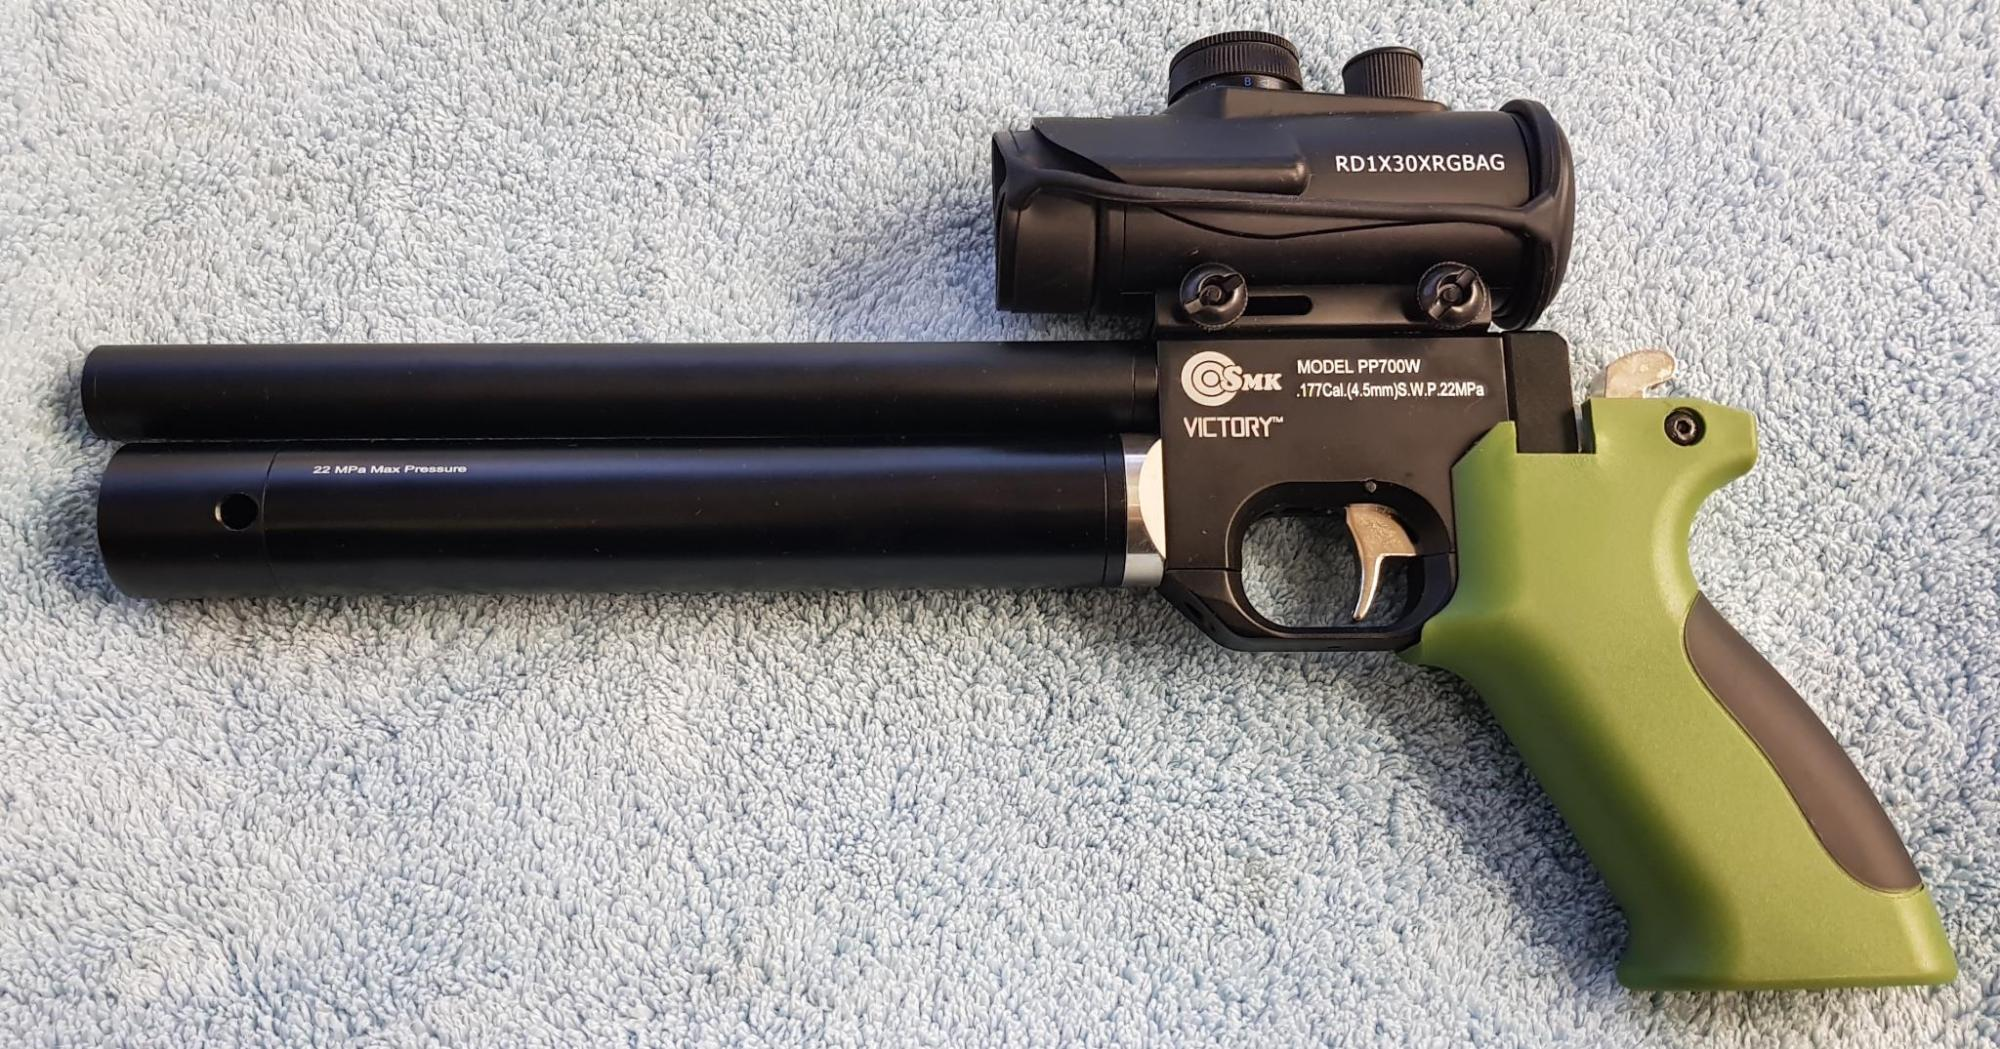 hight resolution of special offergreen grip 700 with sight 190 00 as shown above collected and 213 00 with silencer adaptor fitted